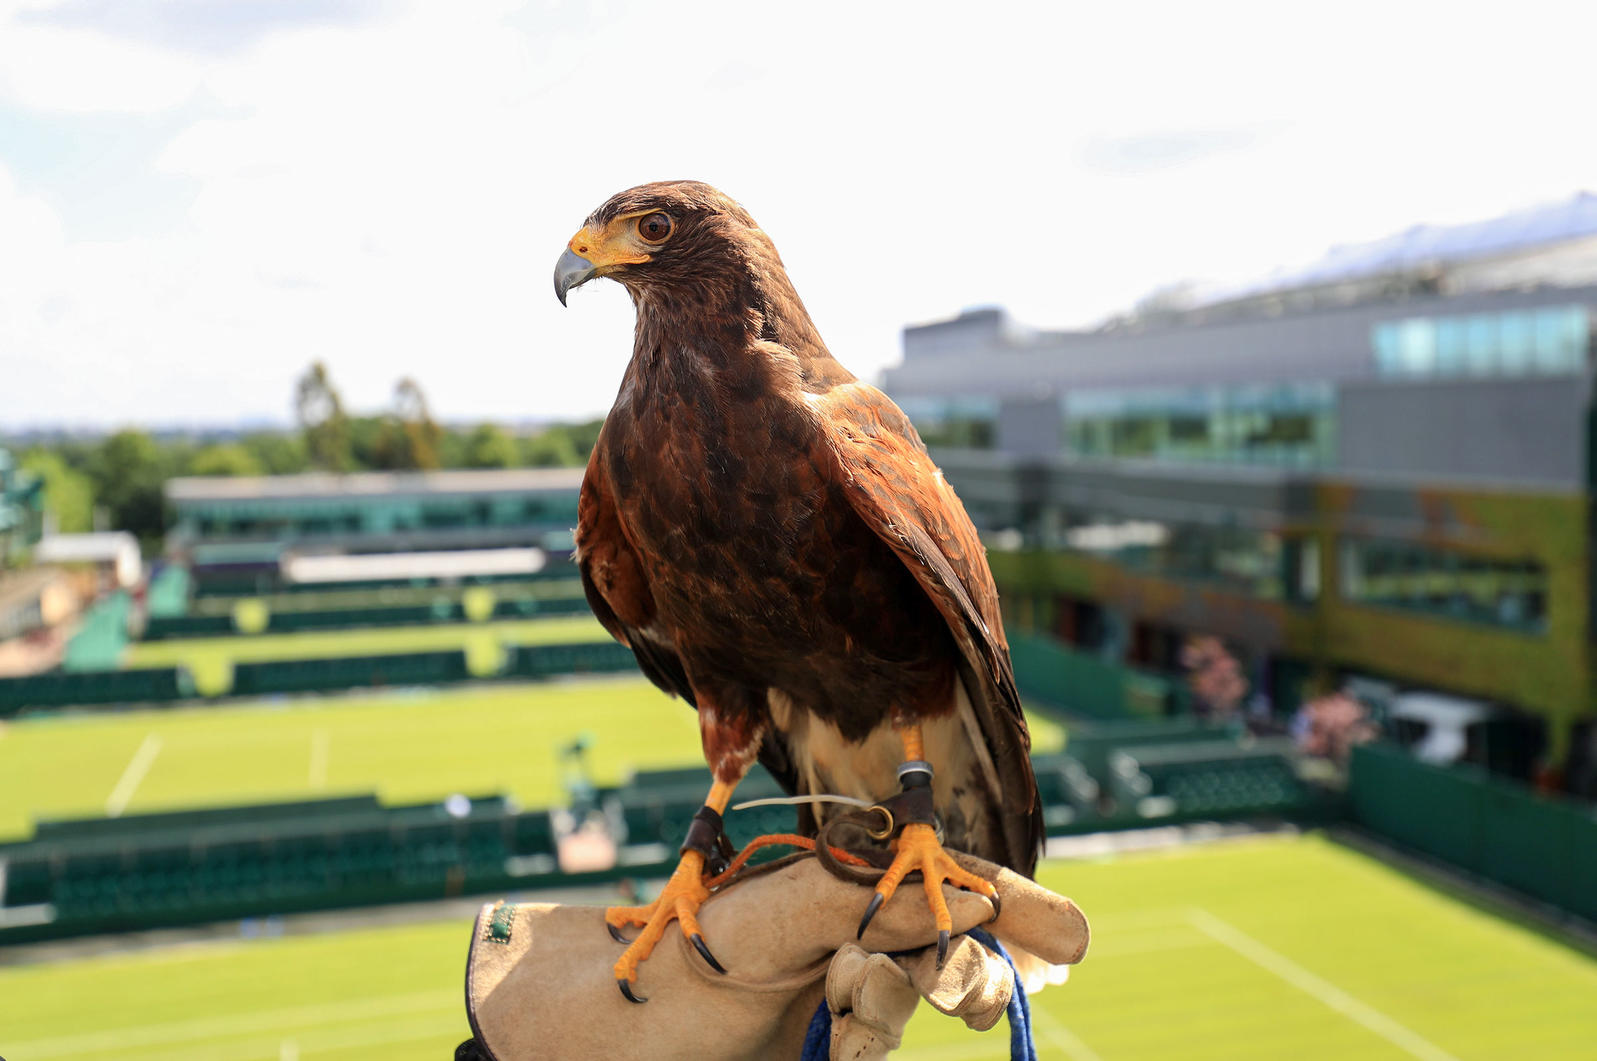 Rufus the hawk at Wimbledon on trainers hand with court in the background.